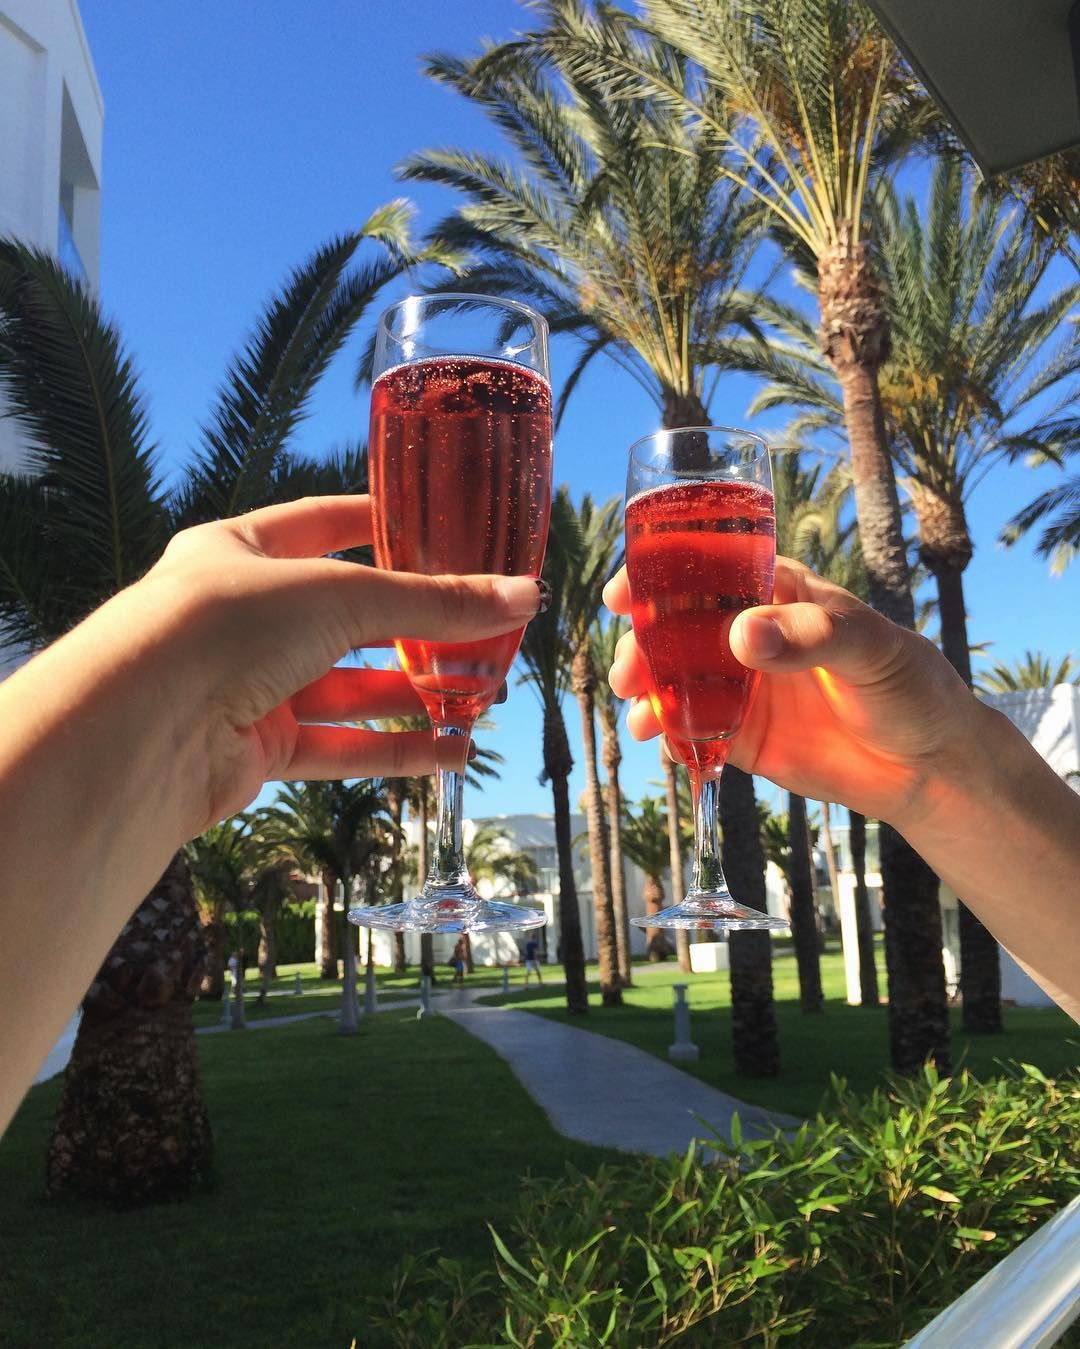 Cheers from Riu Palace Meloneras - Hotel in Gran Canaria, Spain